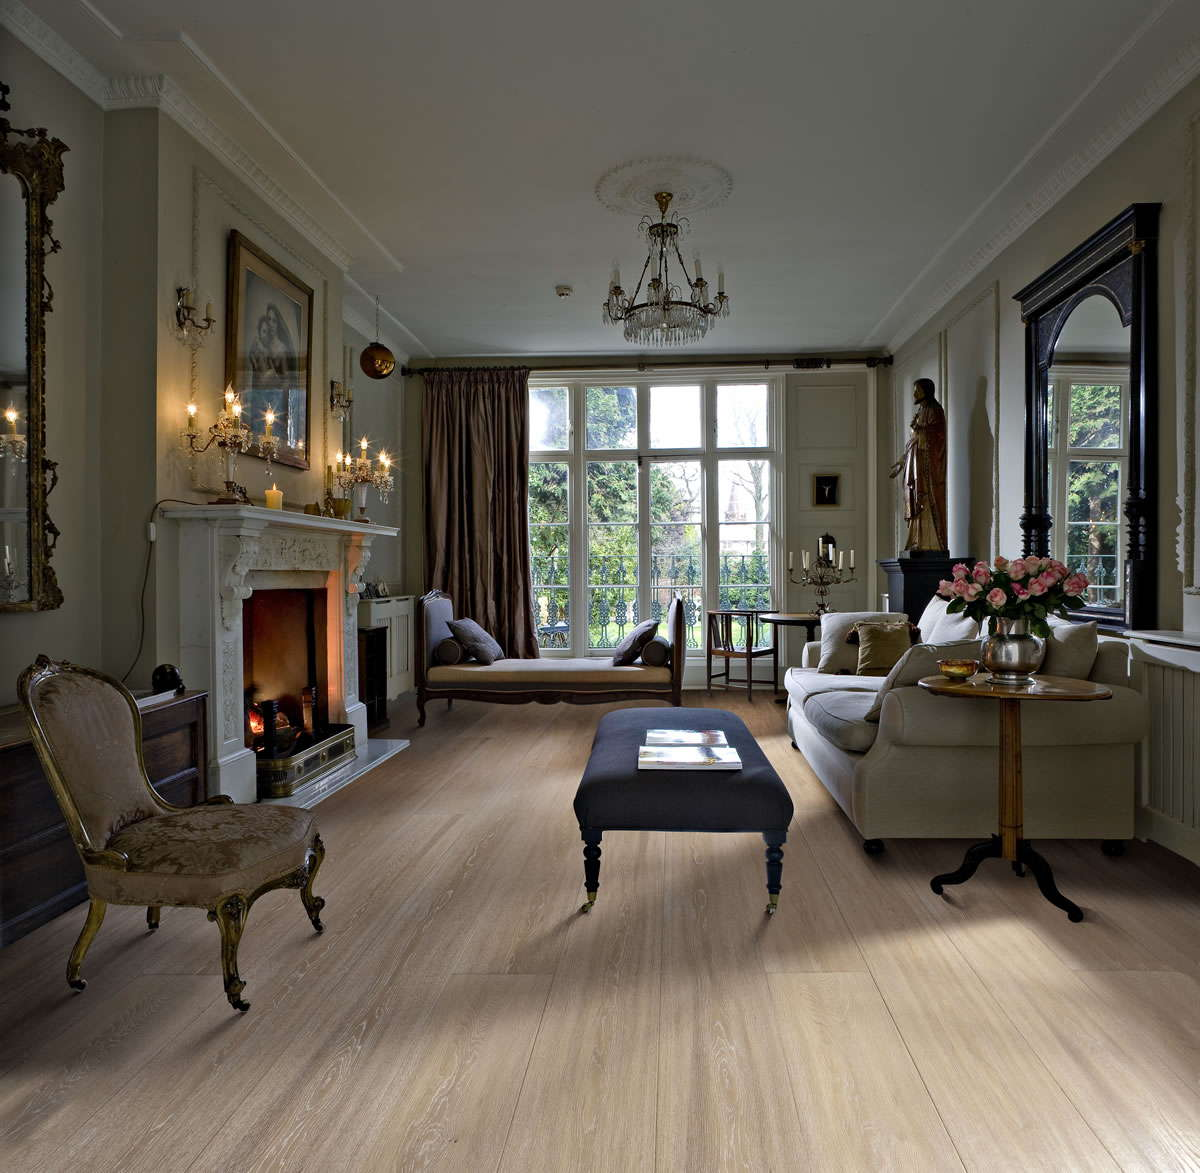 Kahrs Oak Manor Engineered Wood Flooring - Oak Manor Engineered Wood Flooring